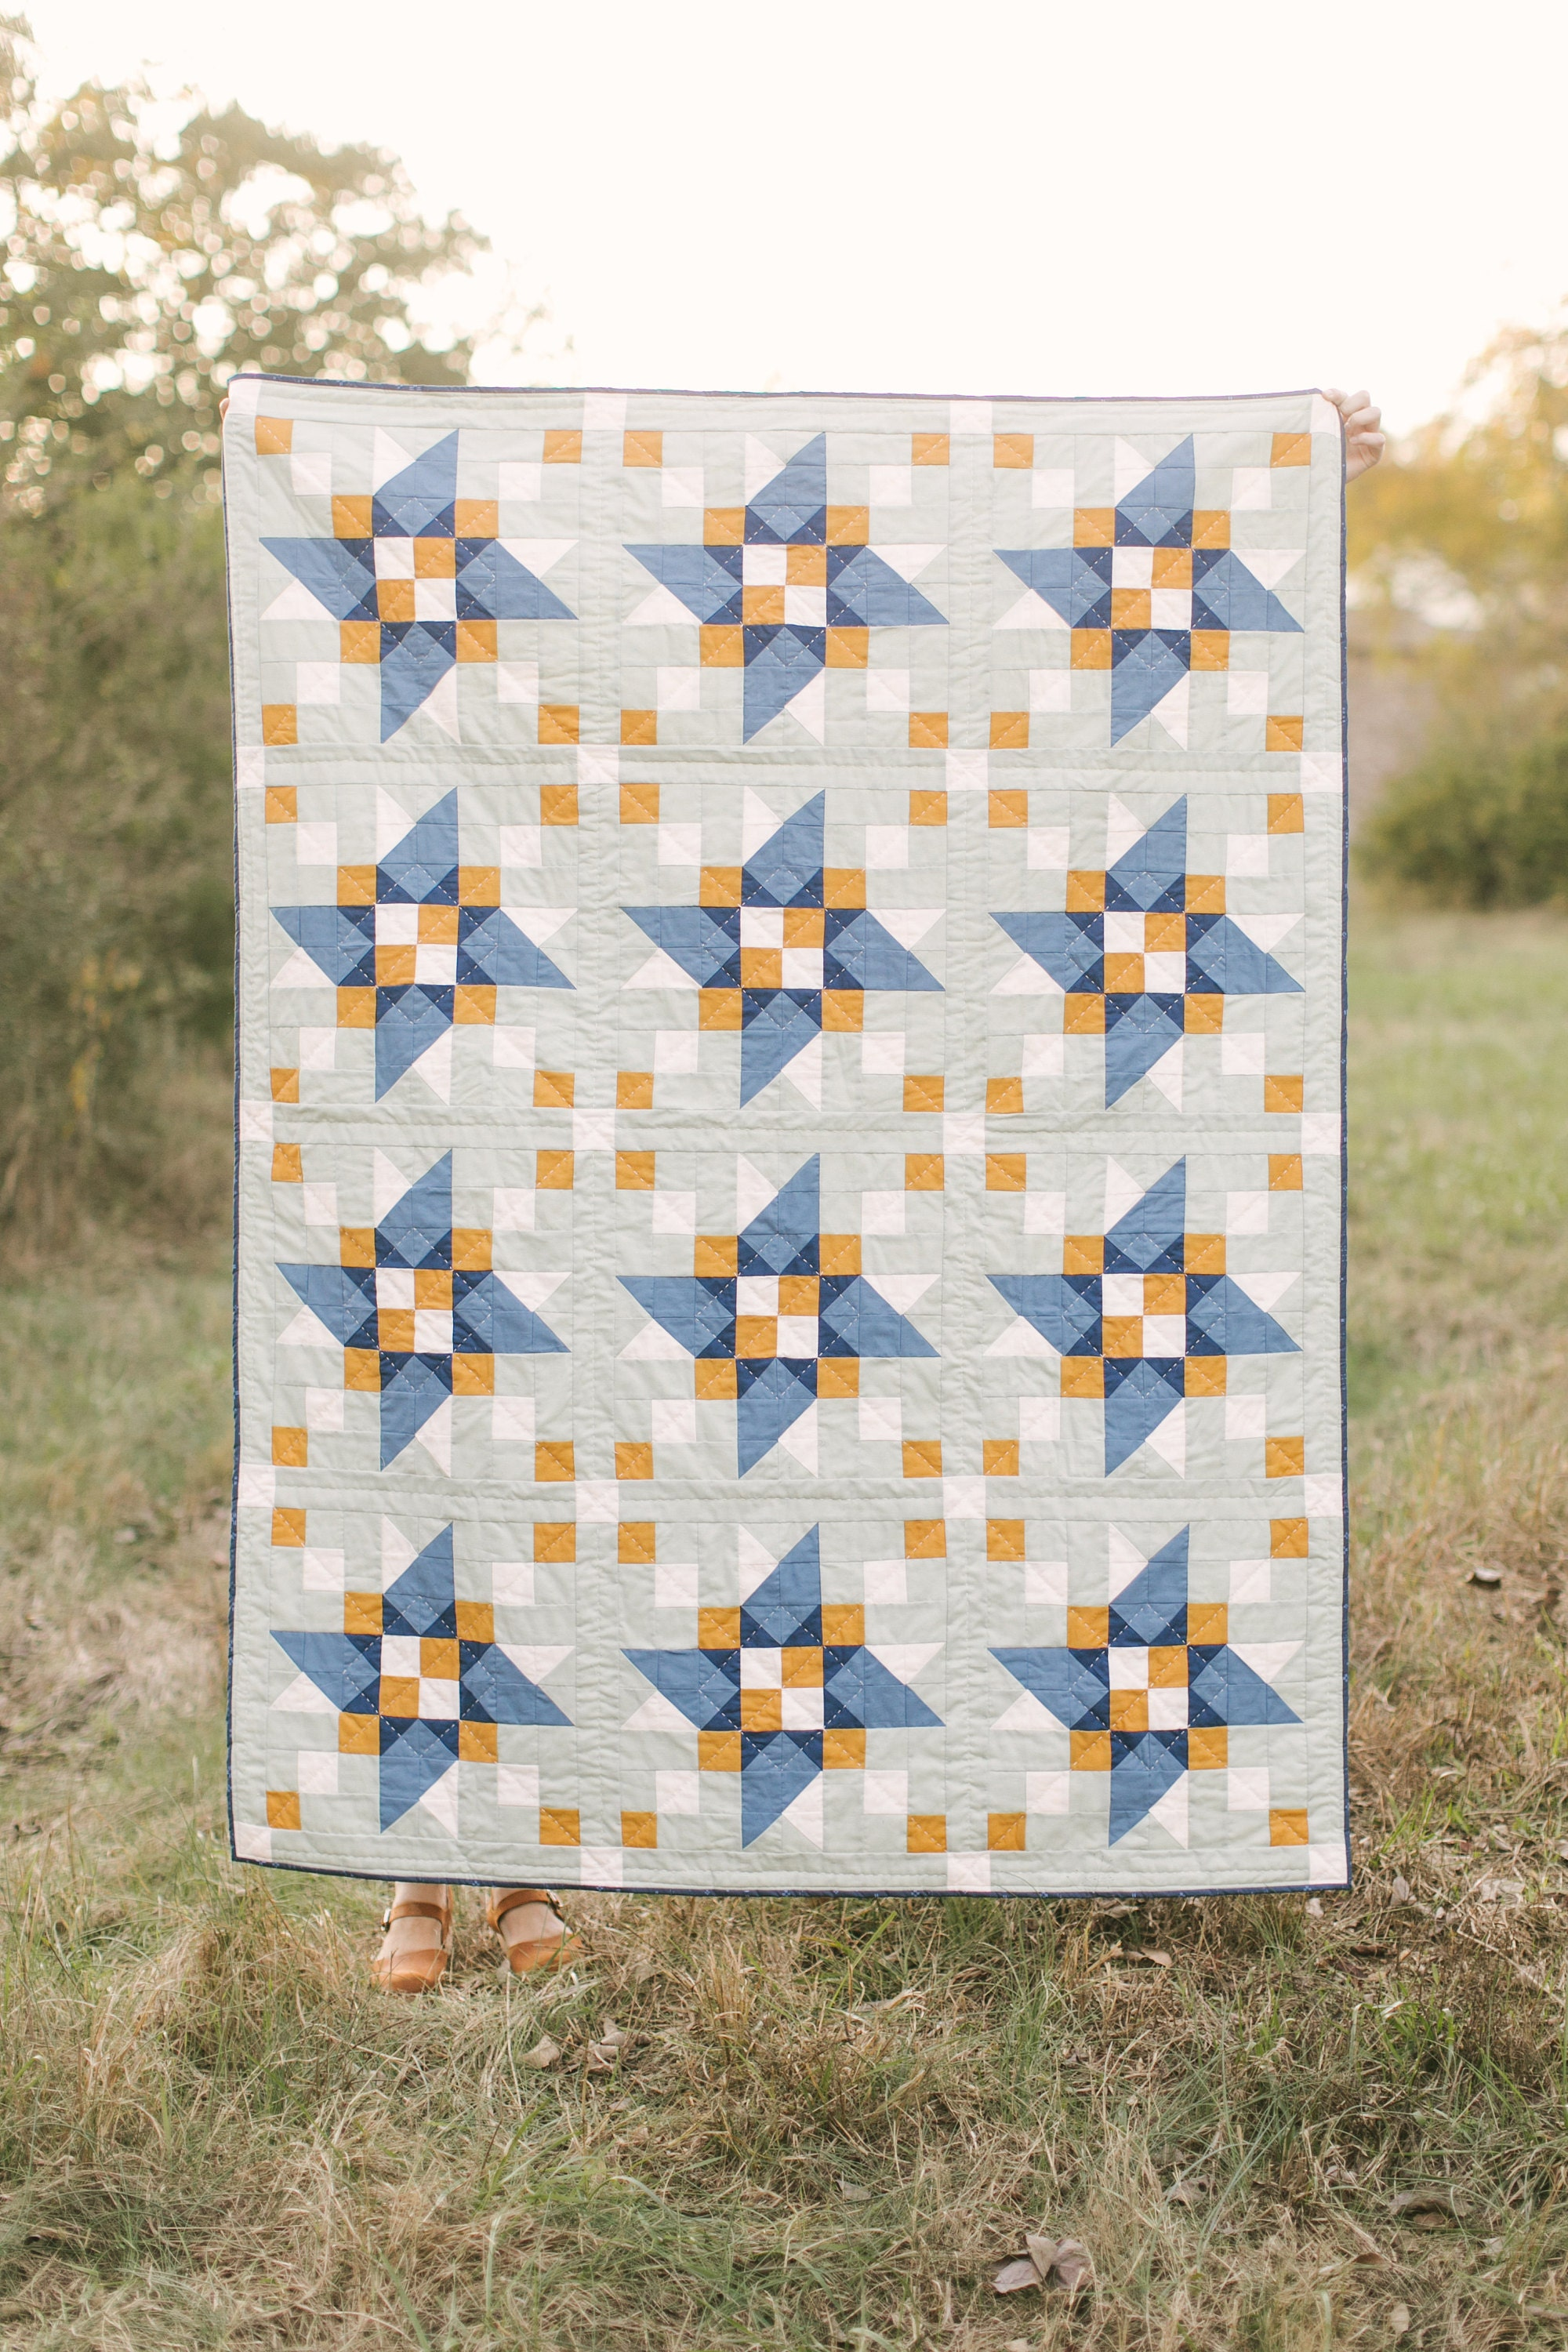 This is the Boulted Quilt pattern I released in November 2019.